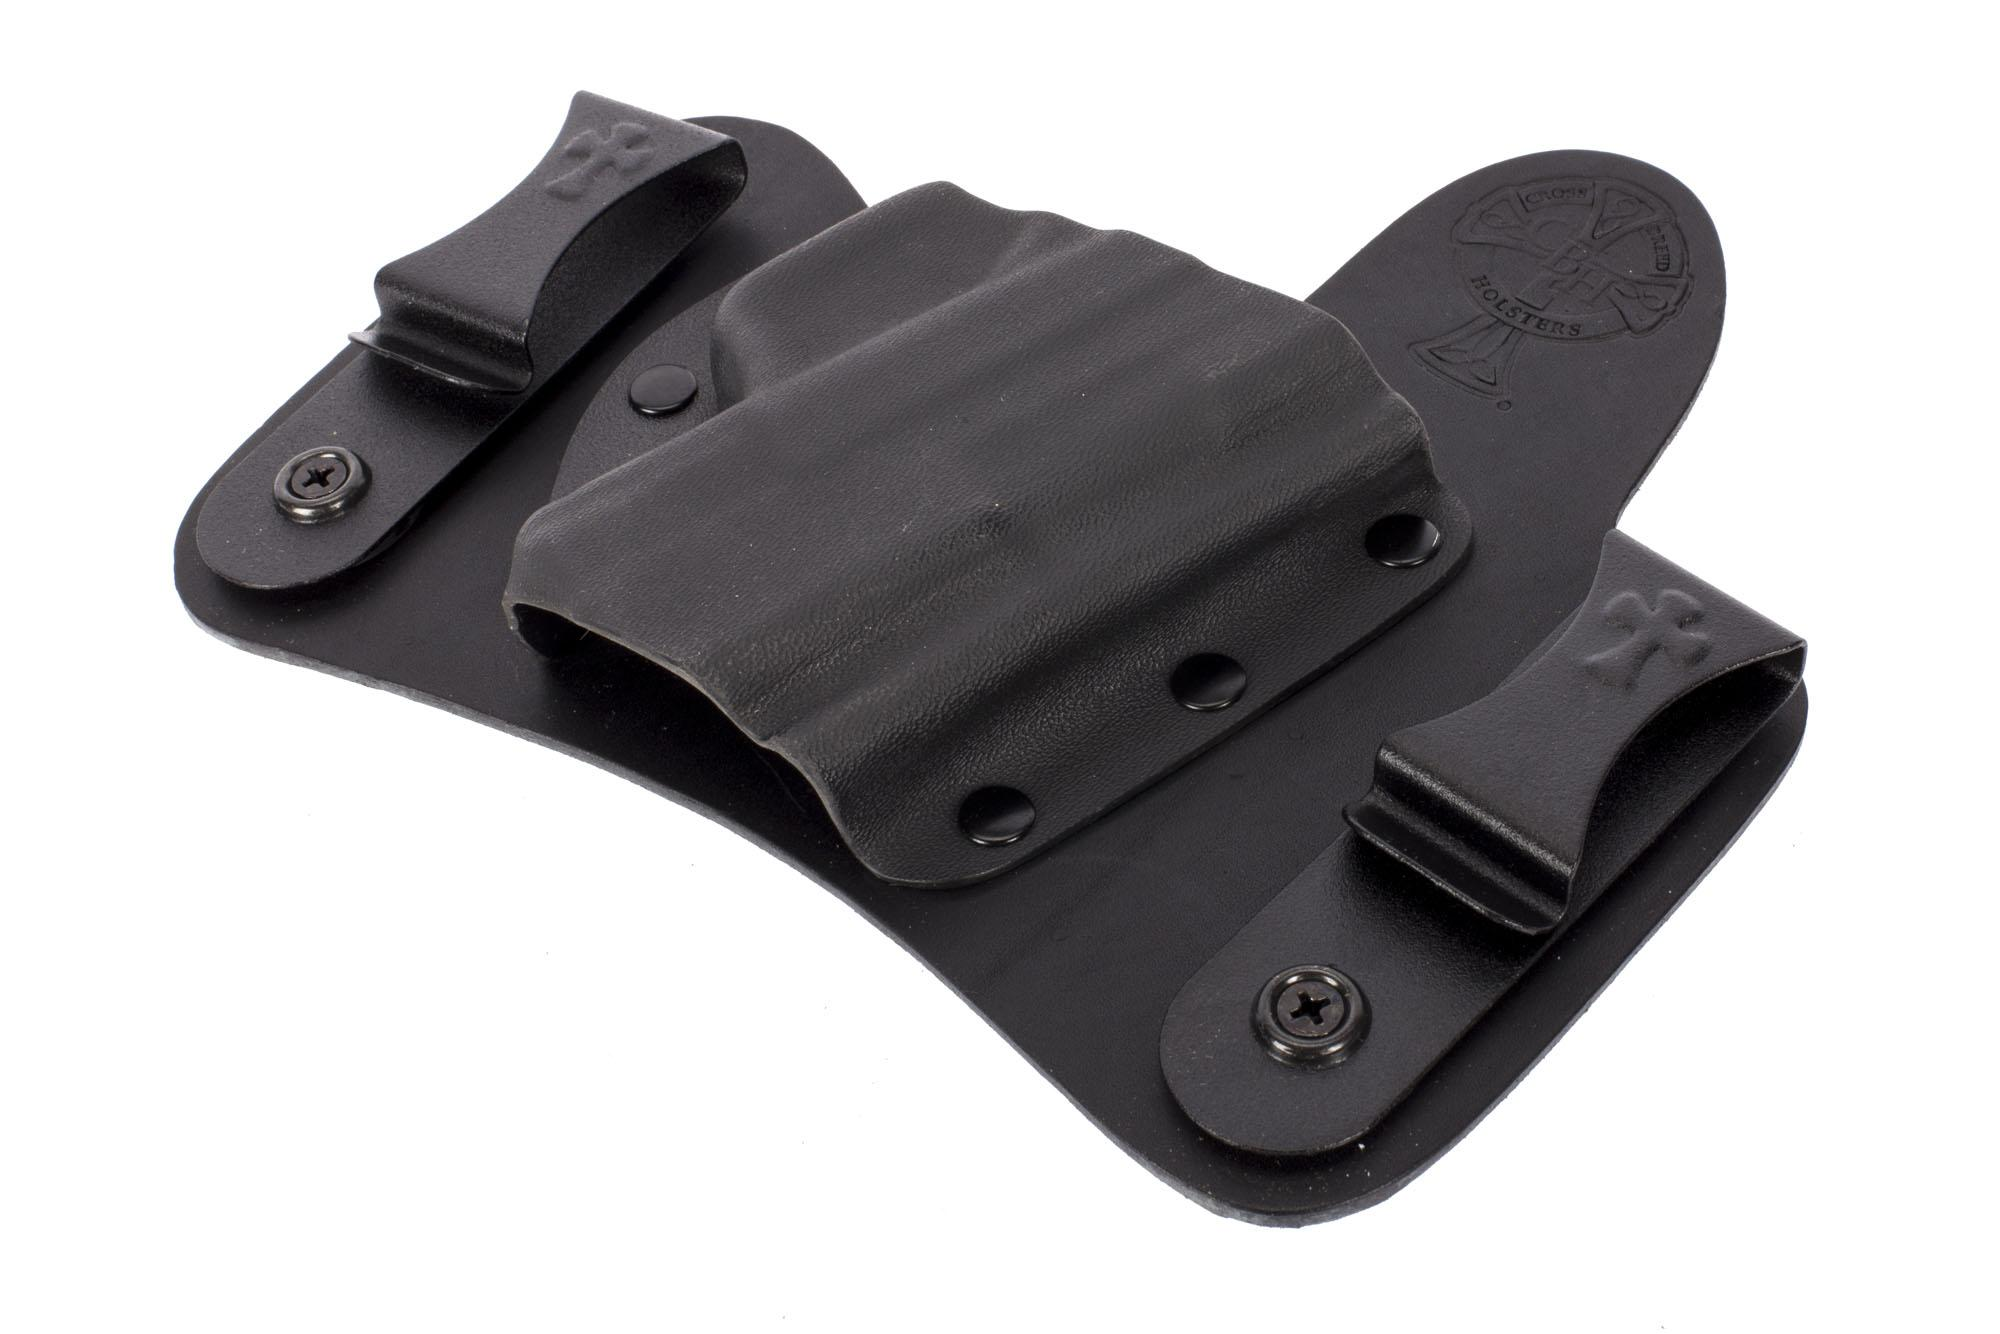 CrossBreed Holsters MiniTuck IWB Holster - Springfield XDS 3 3 9mm &  45 ACP